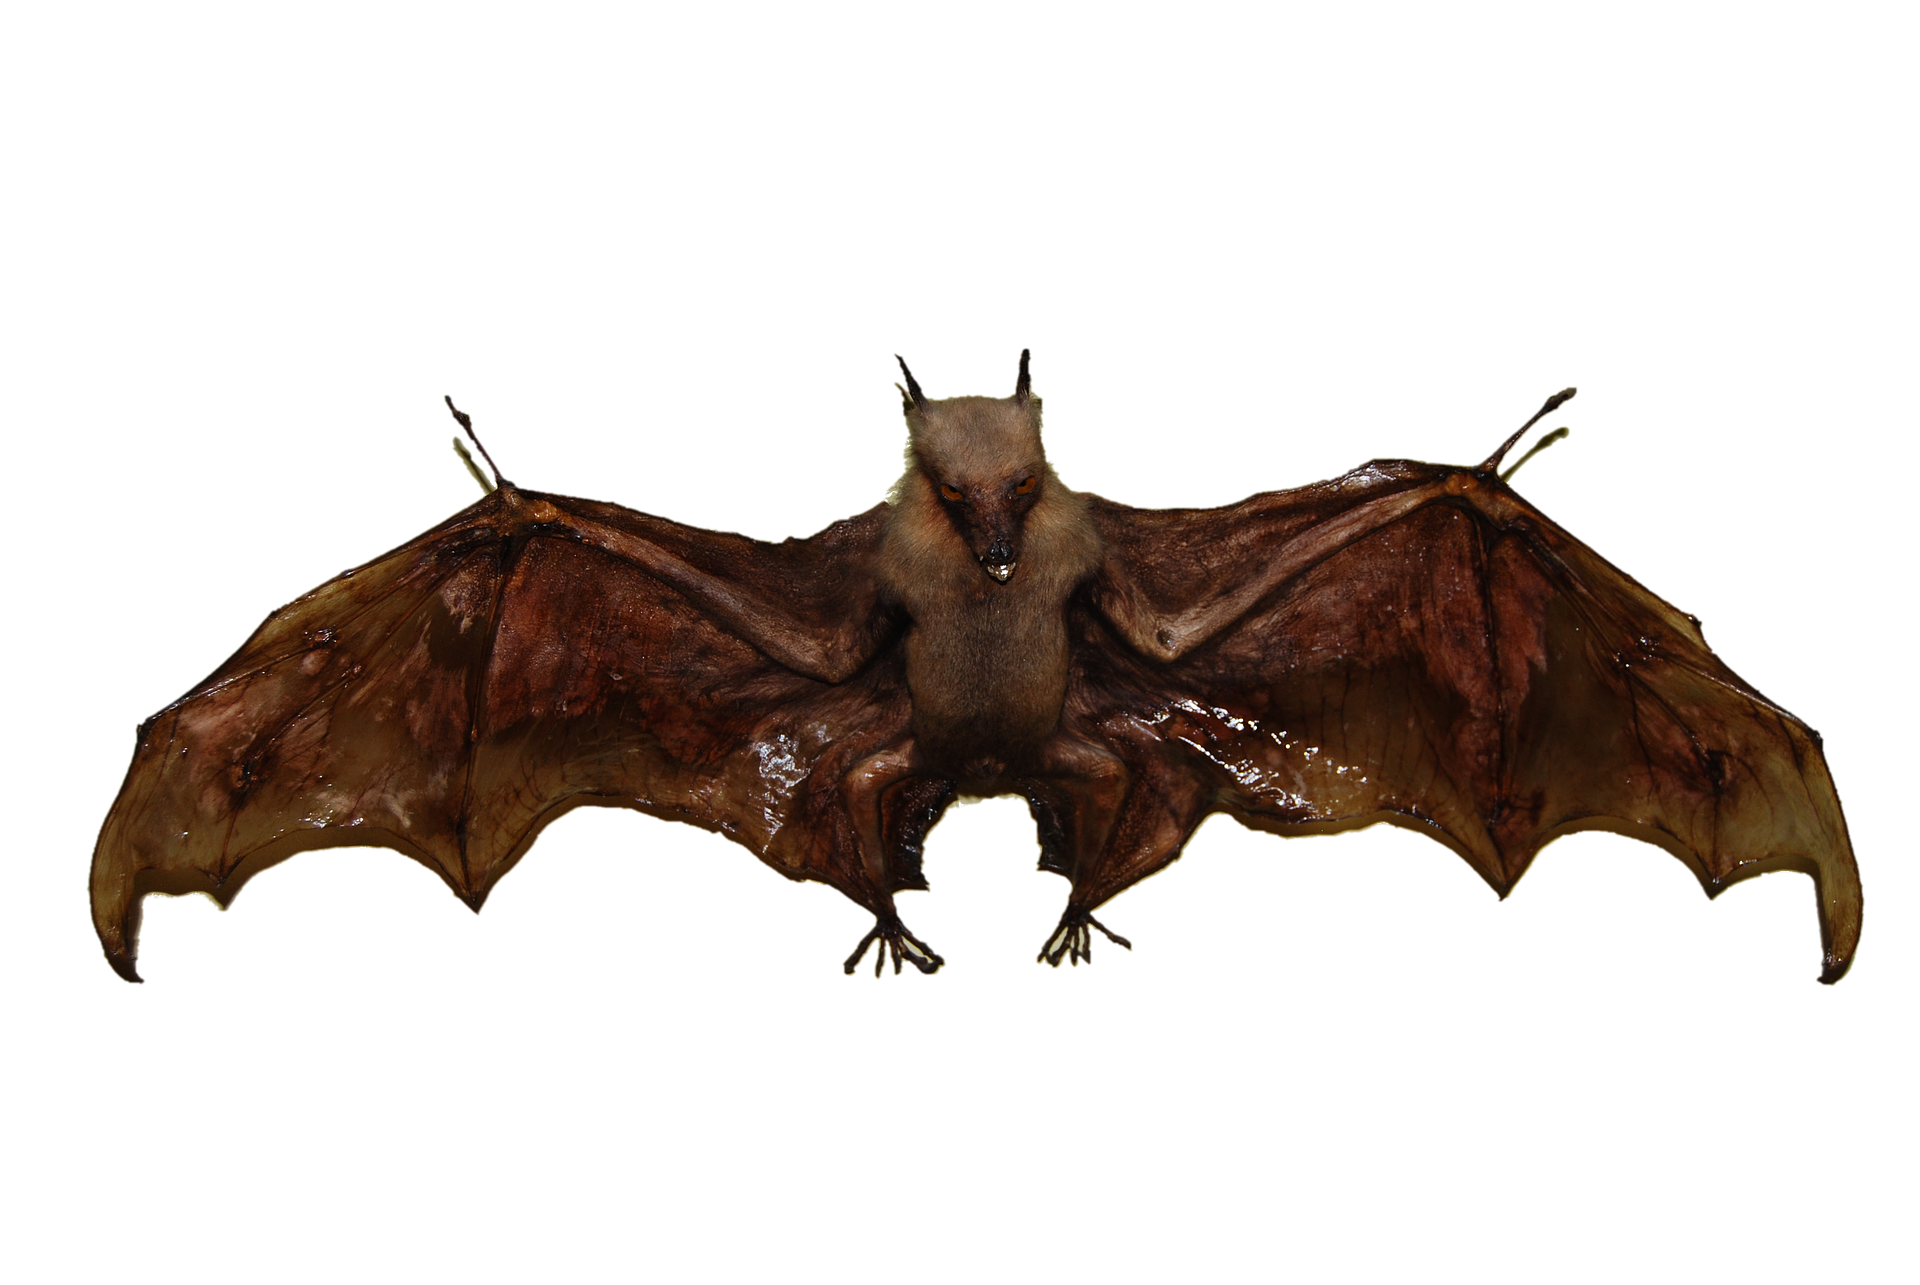 bat removal experts service high satisfaction ratings #20481